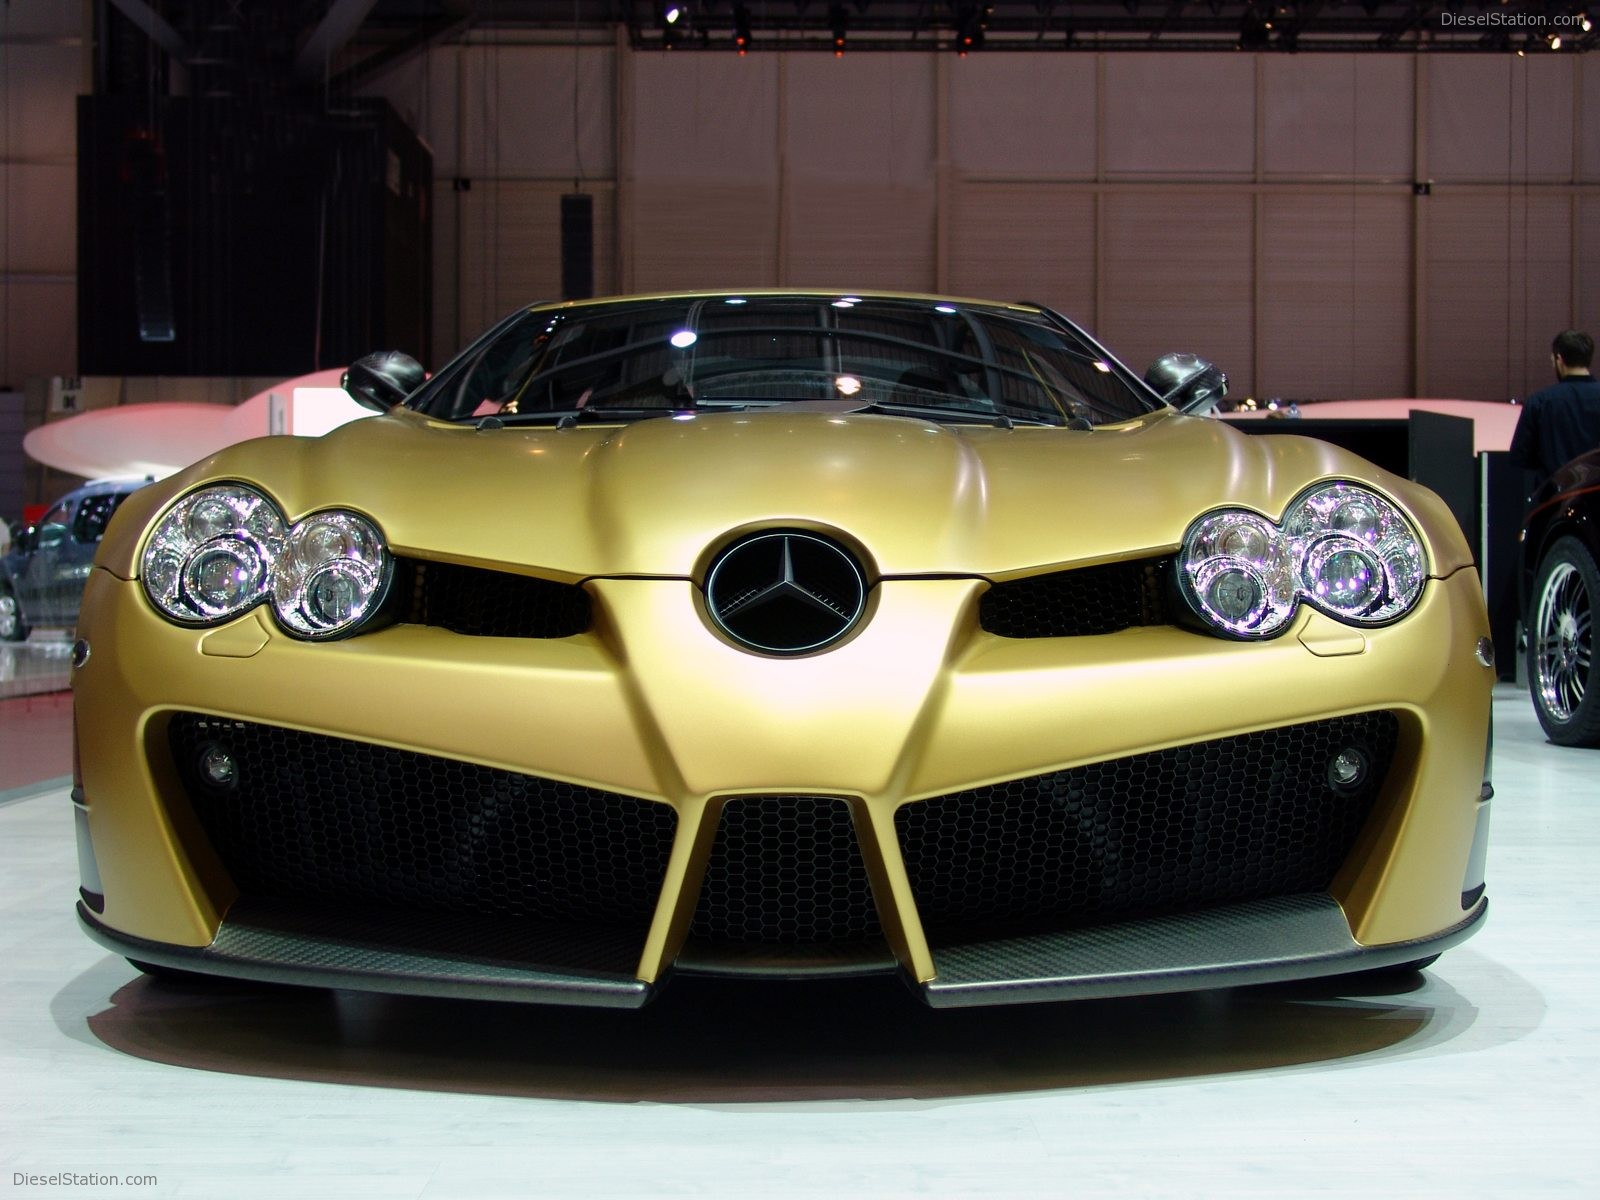 Mansory renovatio photo - 4